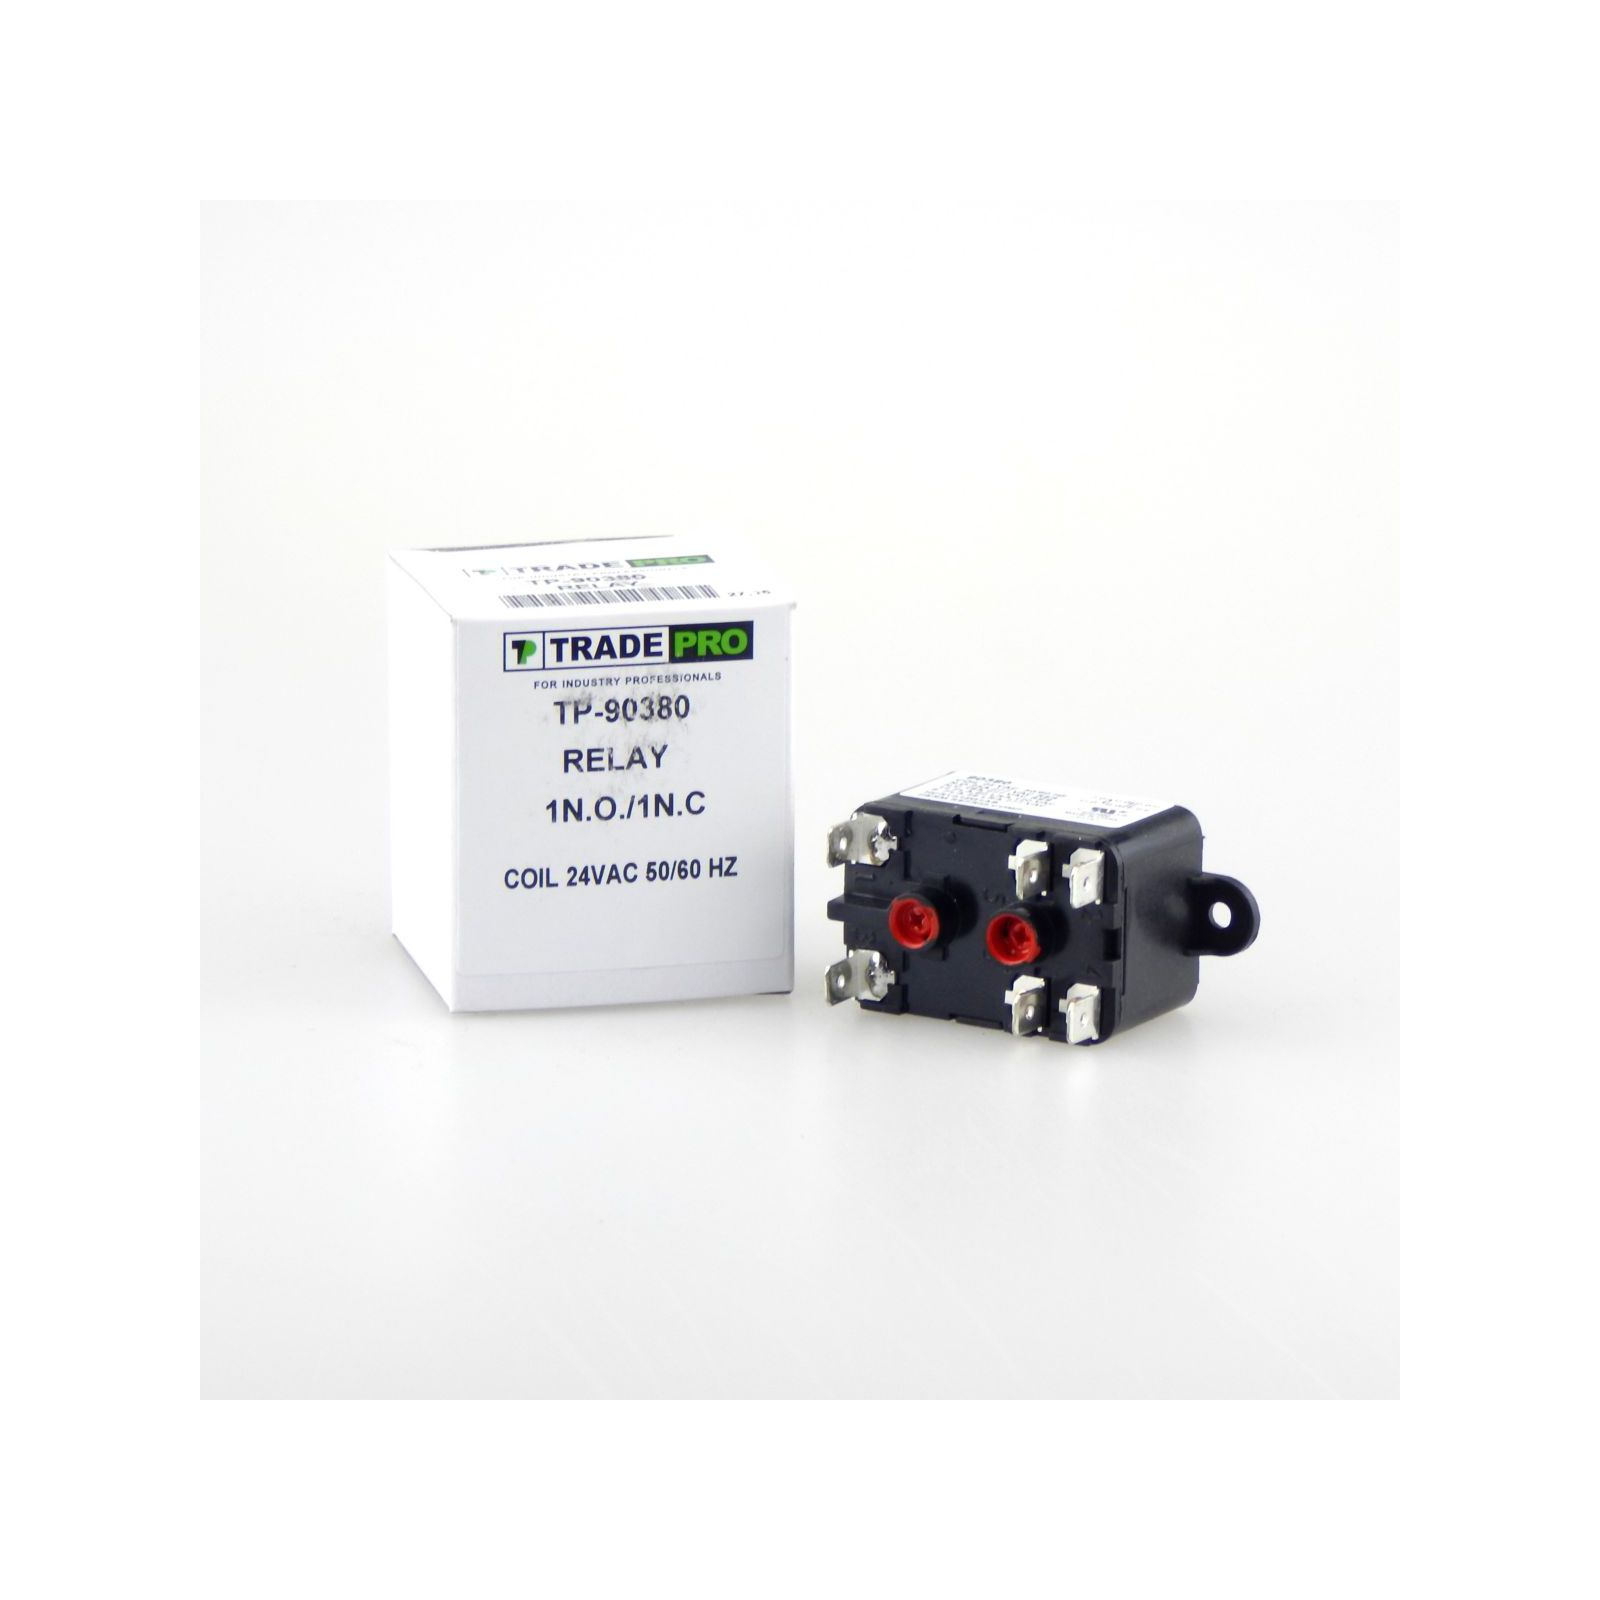 tradepro® tp 90380 relay 24 vac 1 no 1 nc 1366804064877 view full size in new tab